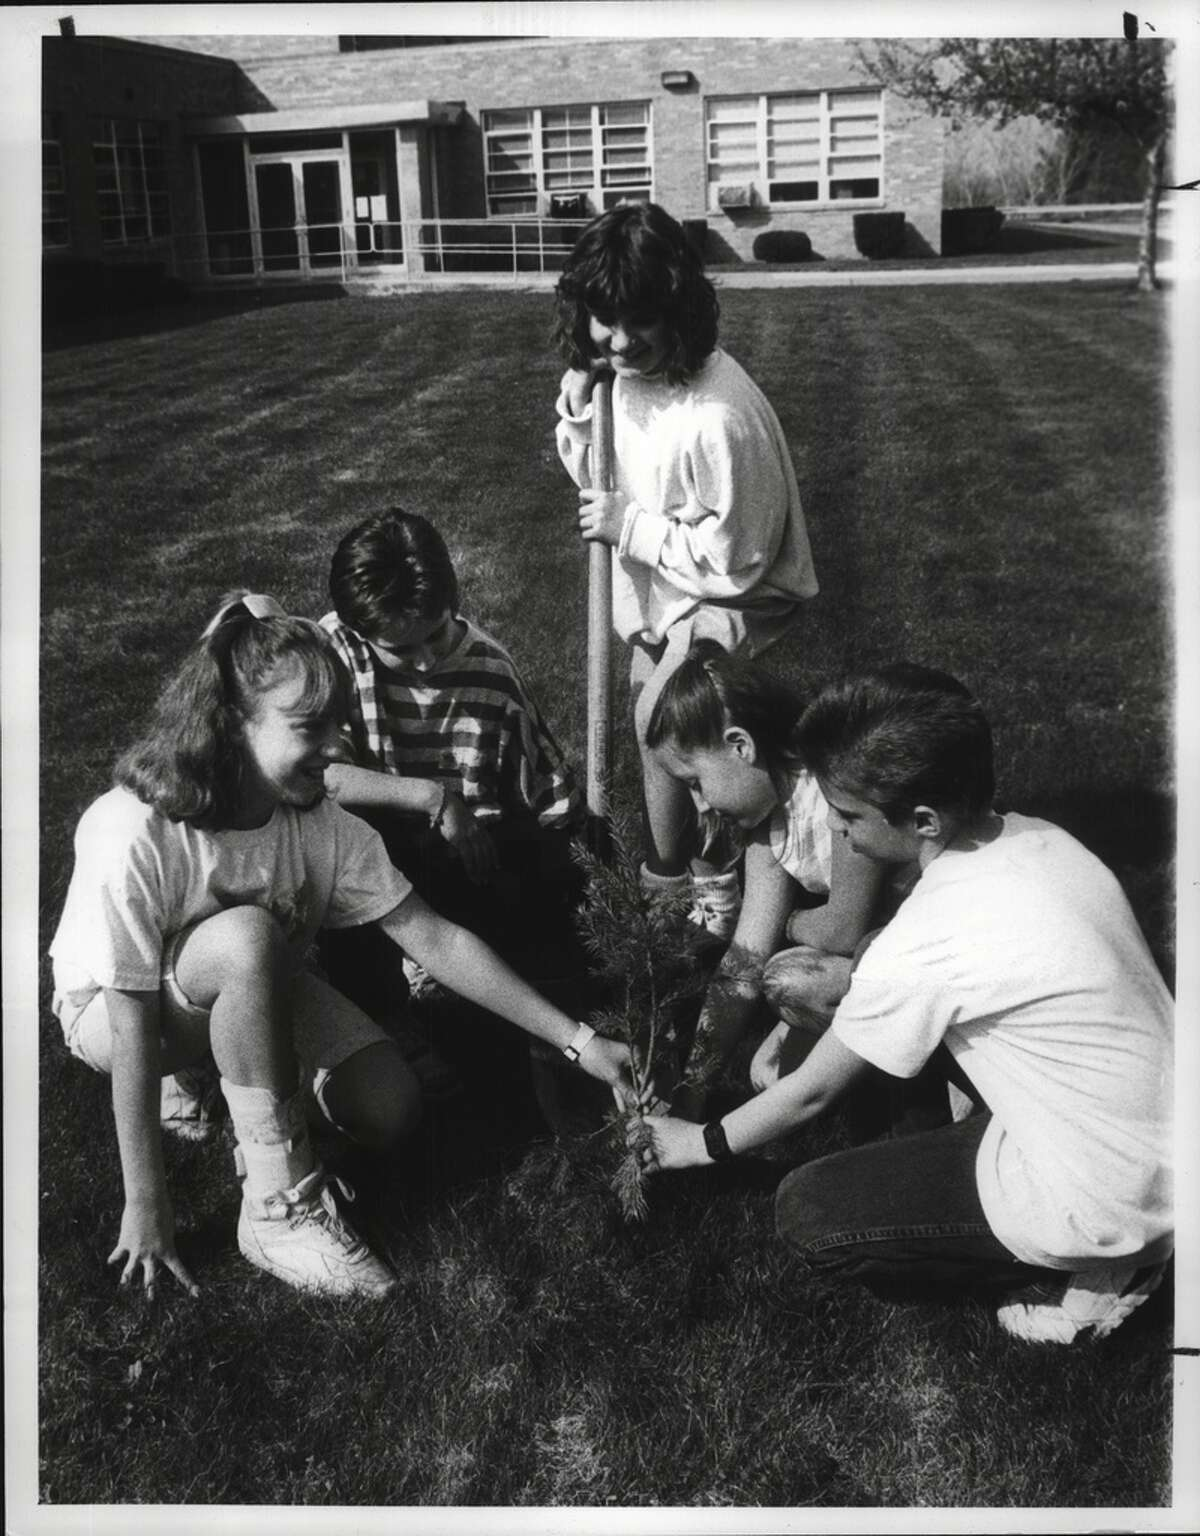 Gardner Dickinson School, Wynanskill, New York - Amanda Decetise; Mike Wasula; Melissa Millington; Ann Marie Lanesey; Jeremy Navarette - 5th grade students planting trees for Earth Day. The school planted a total of 30 trees. Each grade planted trees. April 26, 1990 (Arnold LeFevre/Times Union Archive)